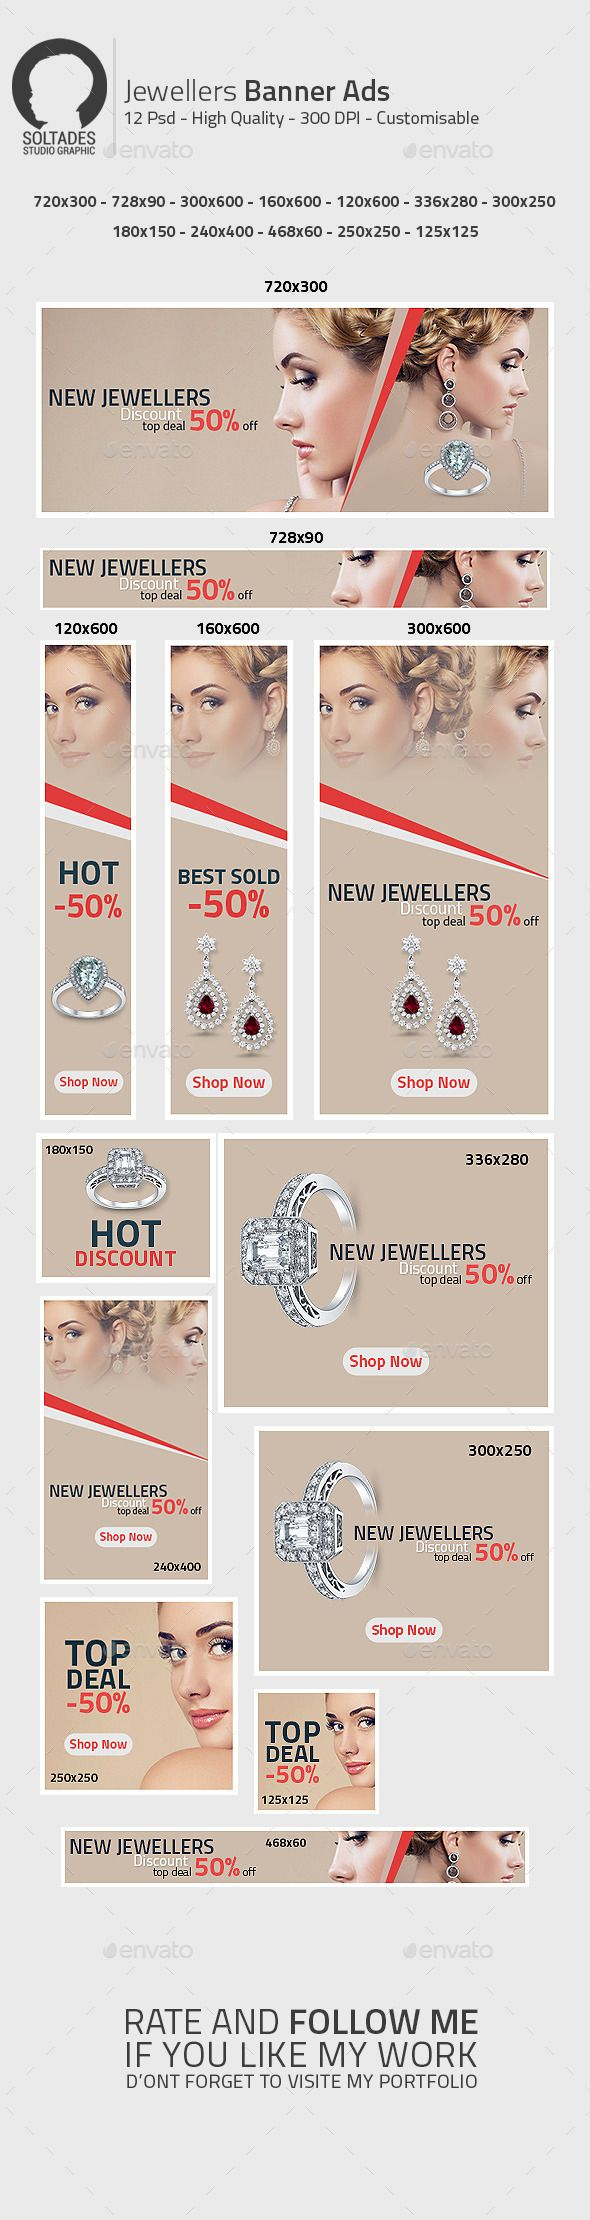 Jewellers Banner Ads